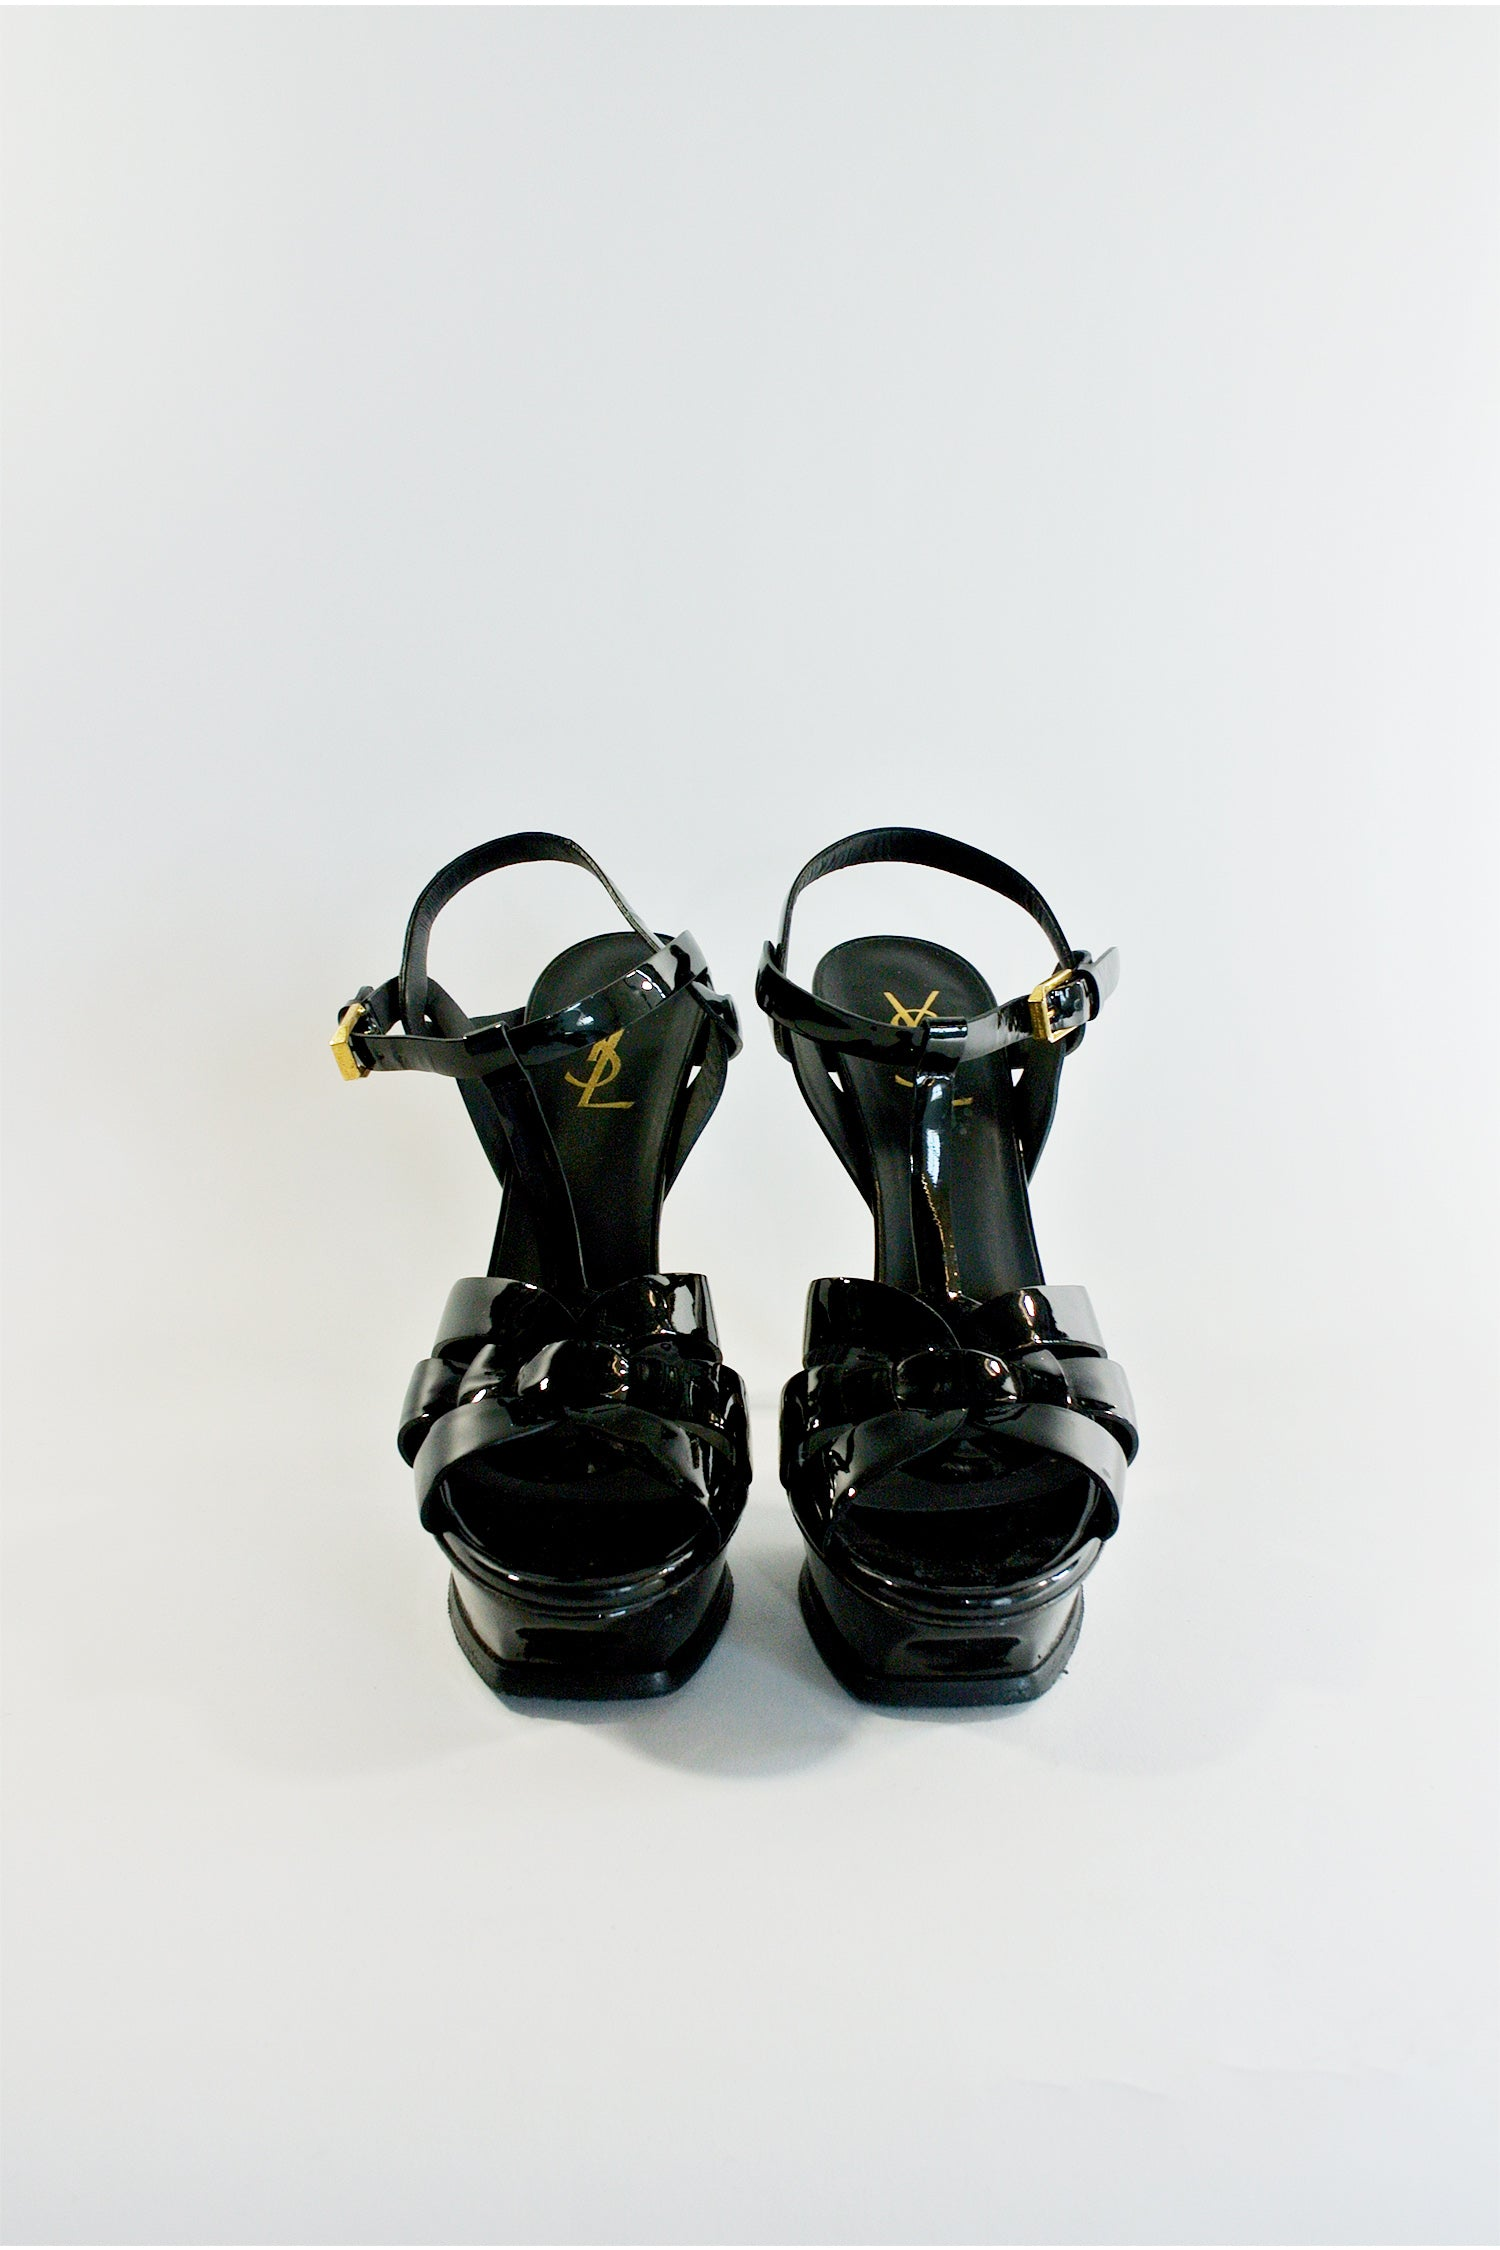 Yves Saint Laurent Black Tribute Sandals Sz 38